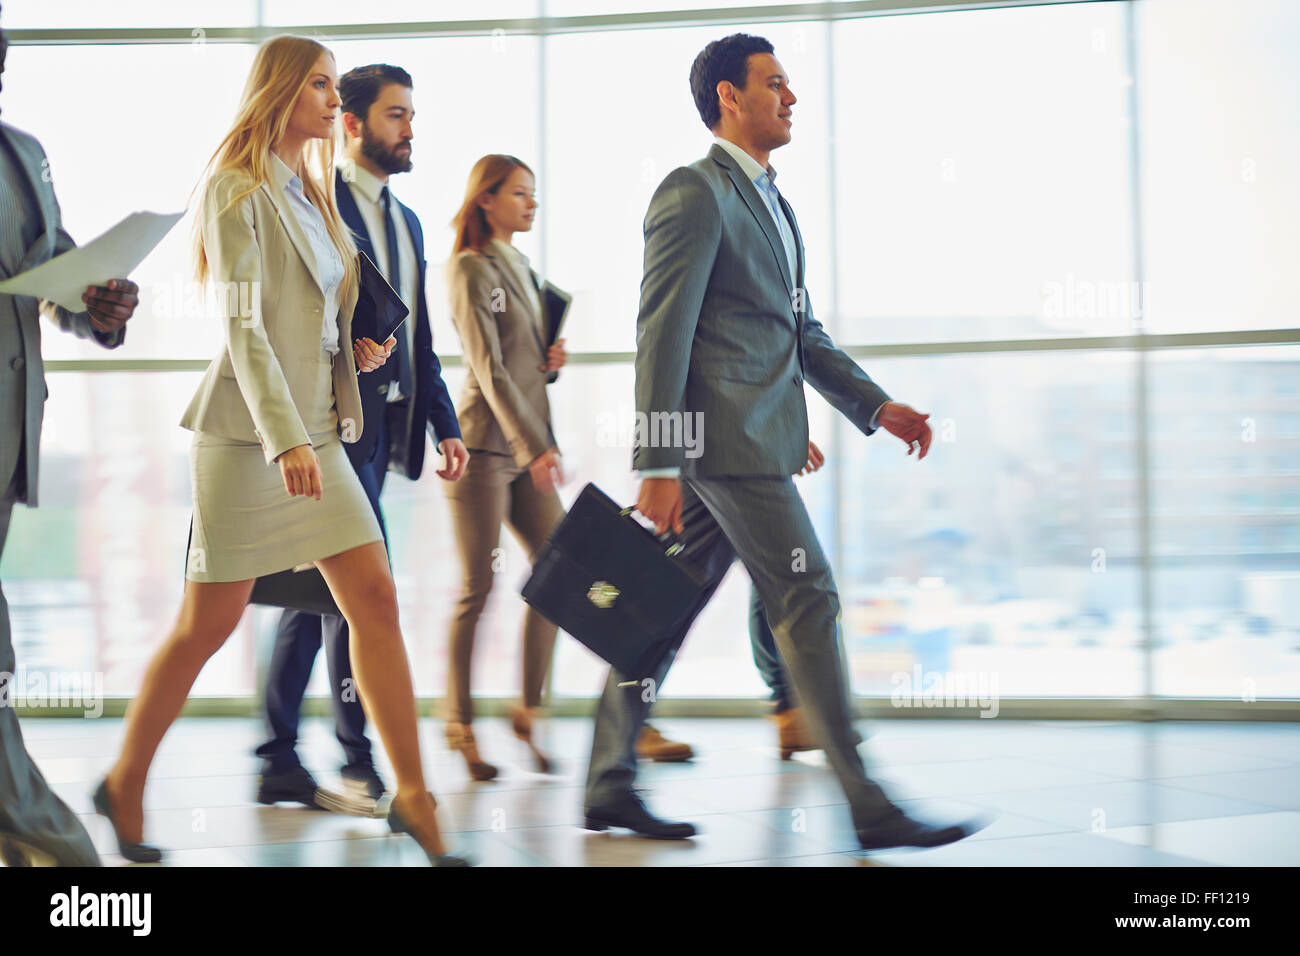 Crowd of business people going down corridor of office building in the morning - Stock Image